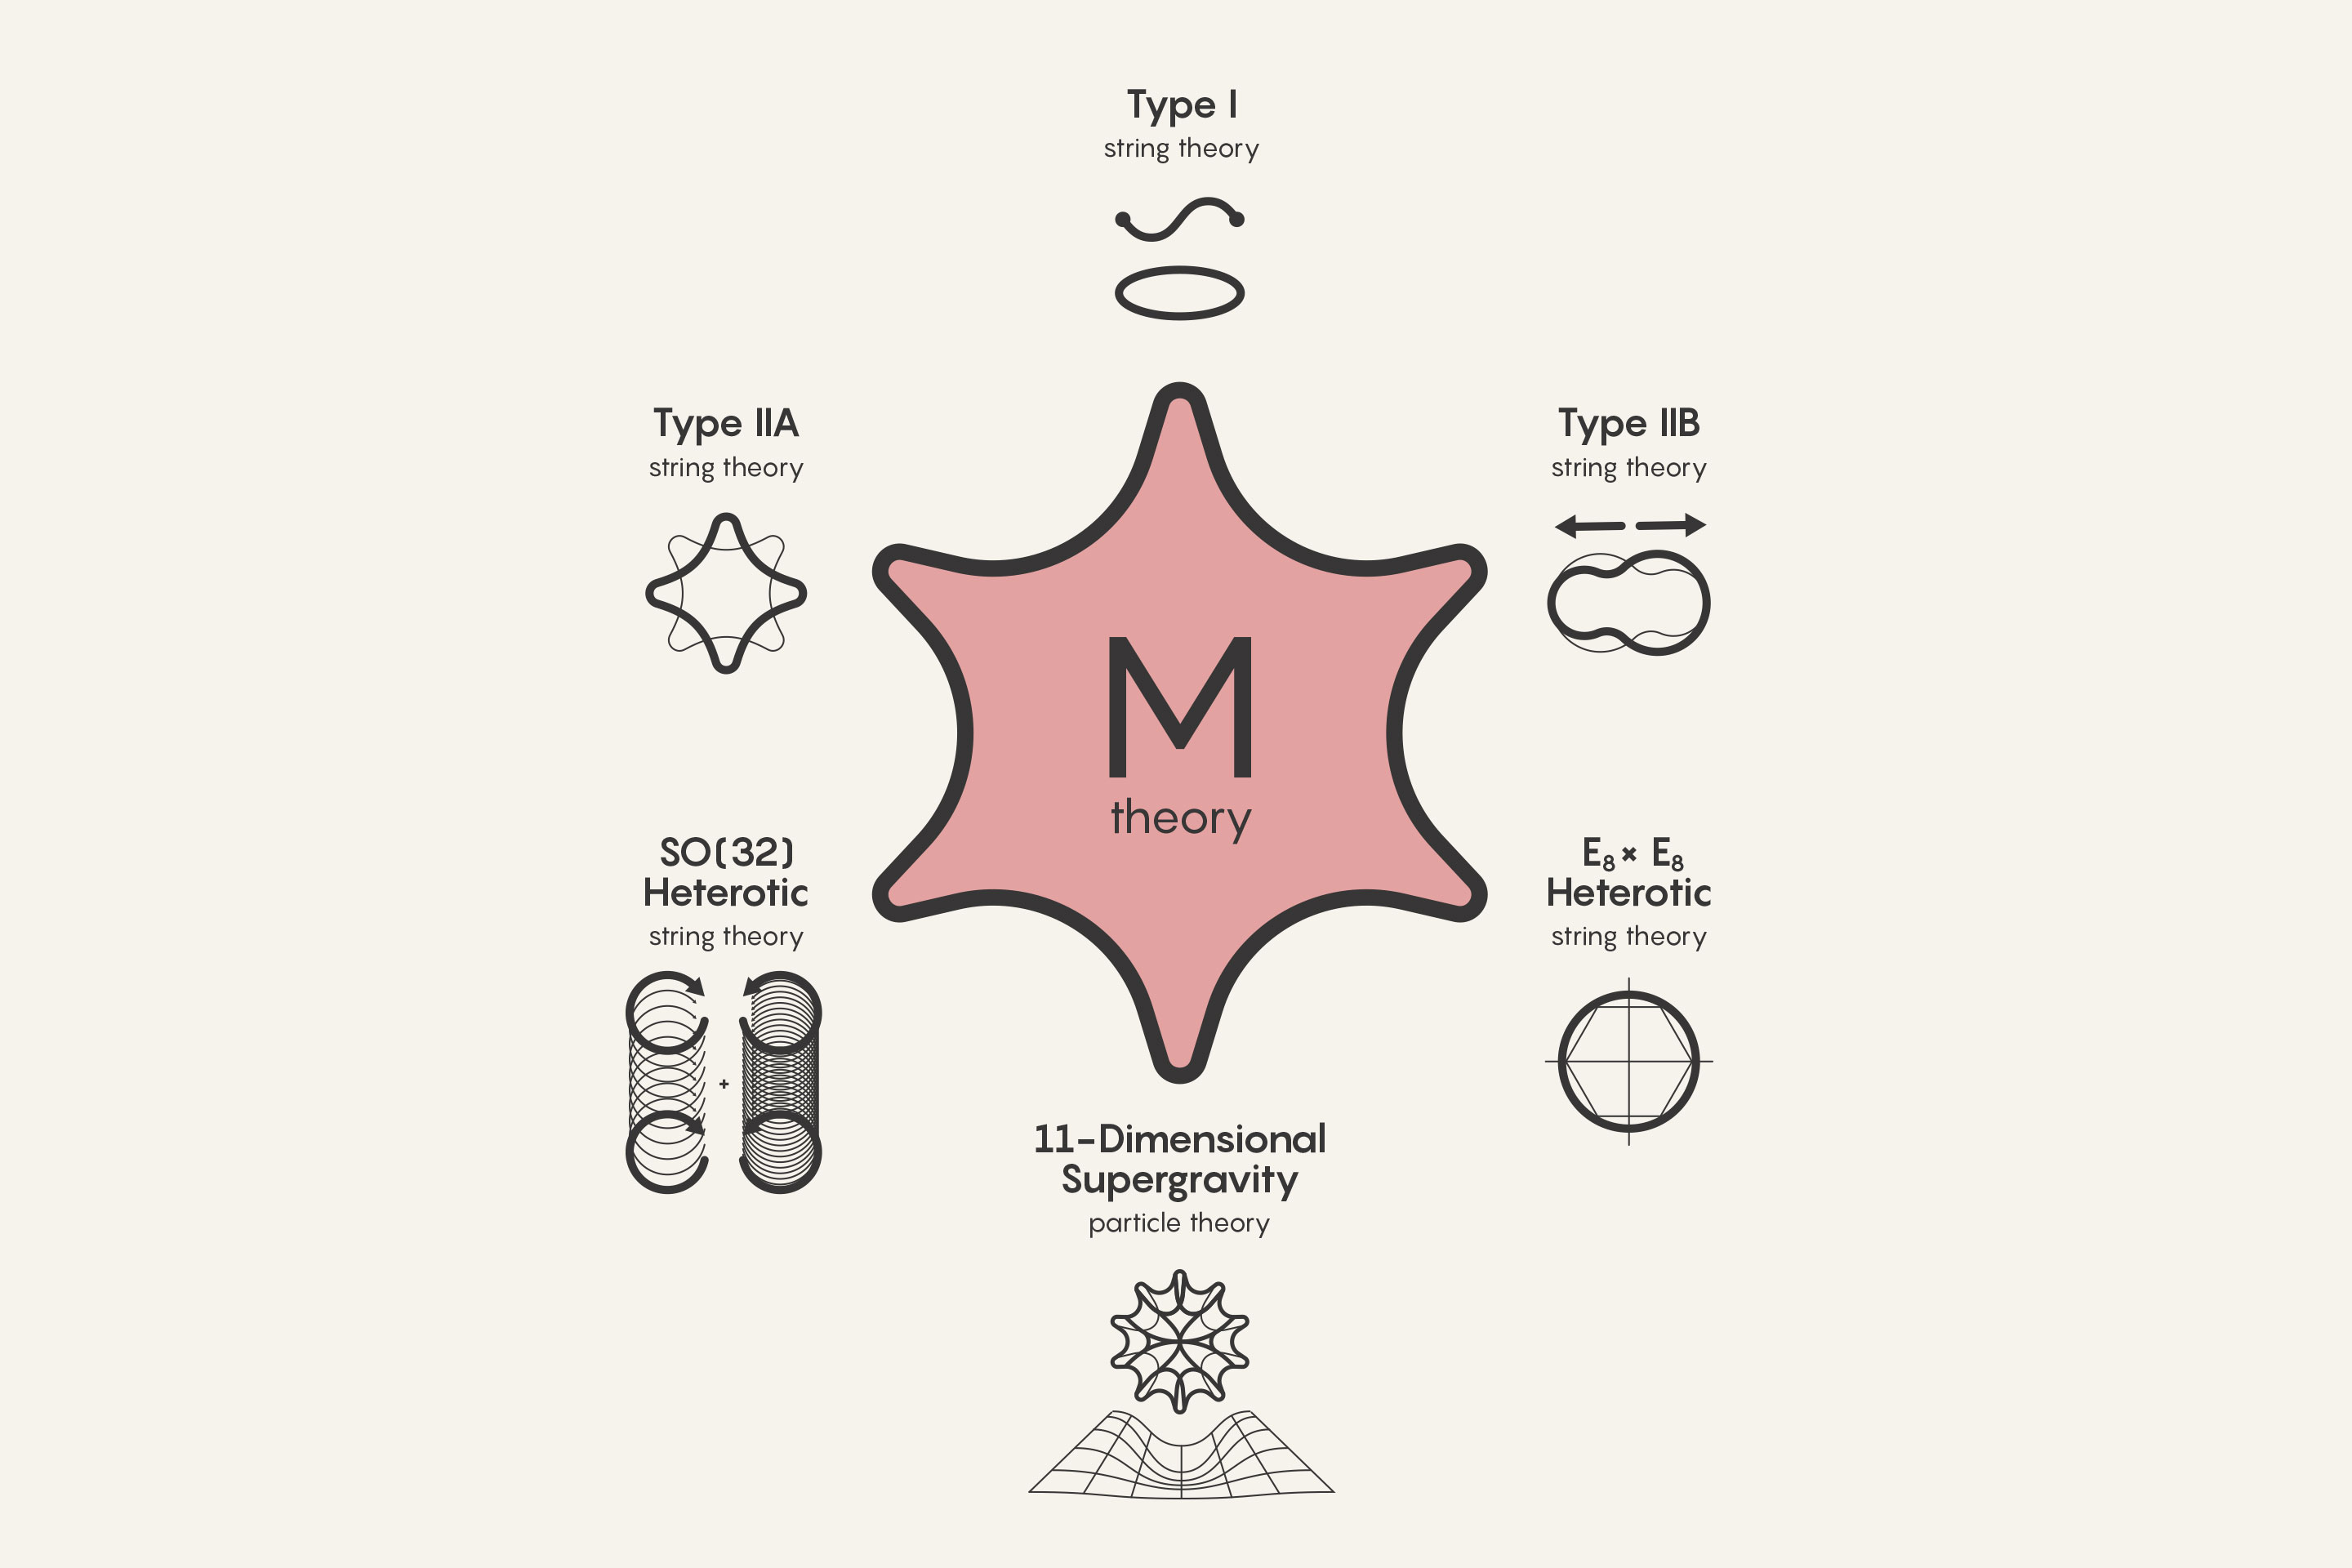 M theory and its six components